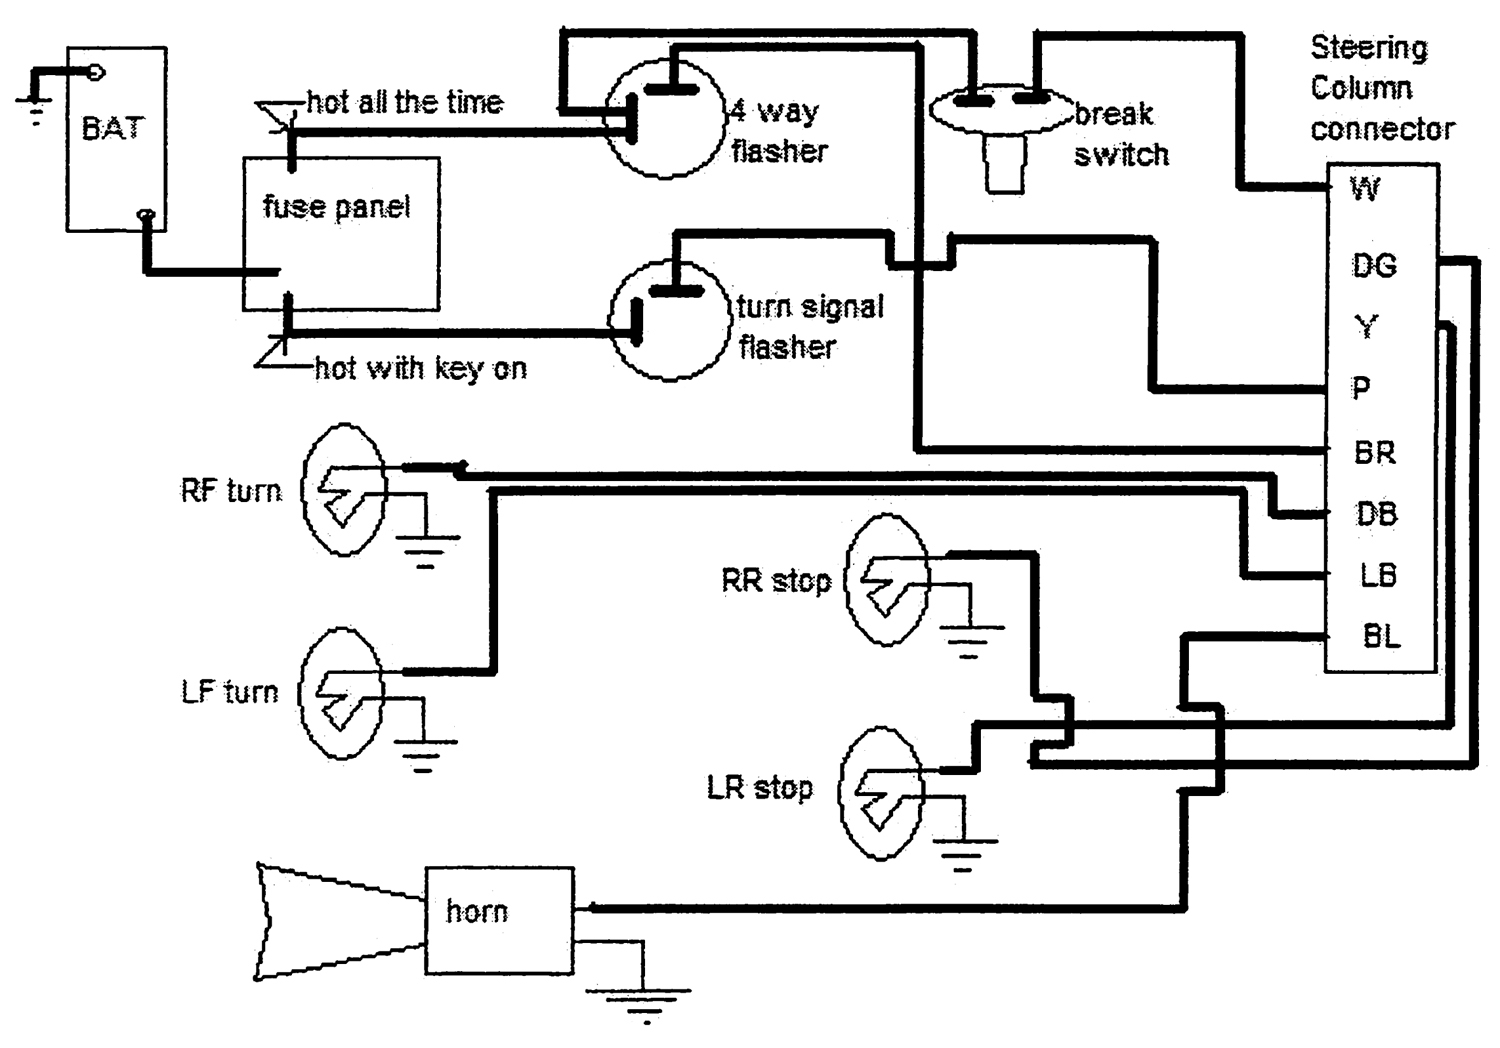 gm steering column wiring schematic Download-If you need to change this connector for any reason the following schematic will be helpful For further explanation CLICK HERE to watch our informative 7-e